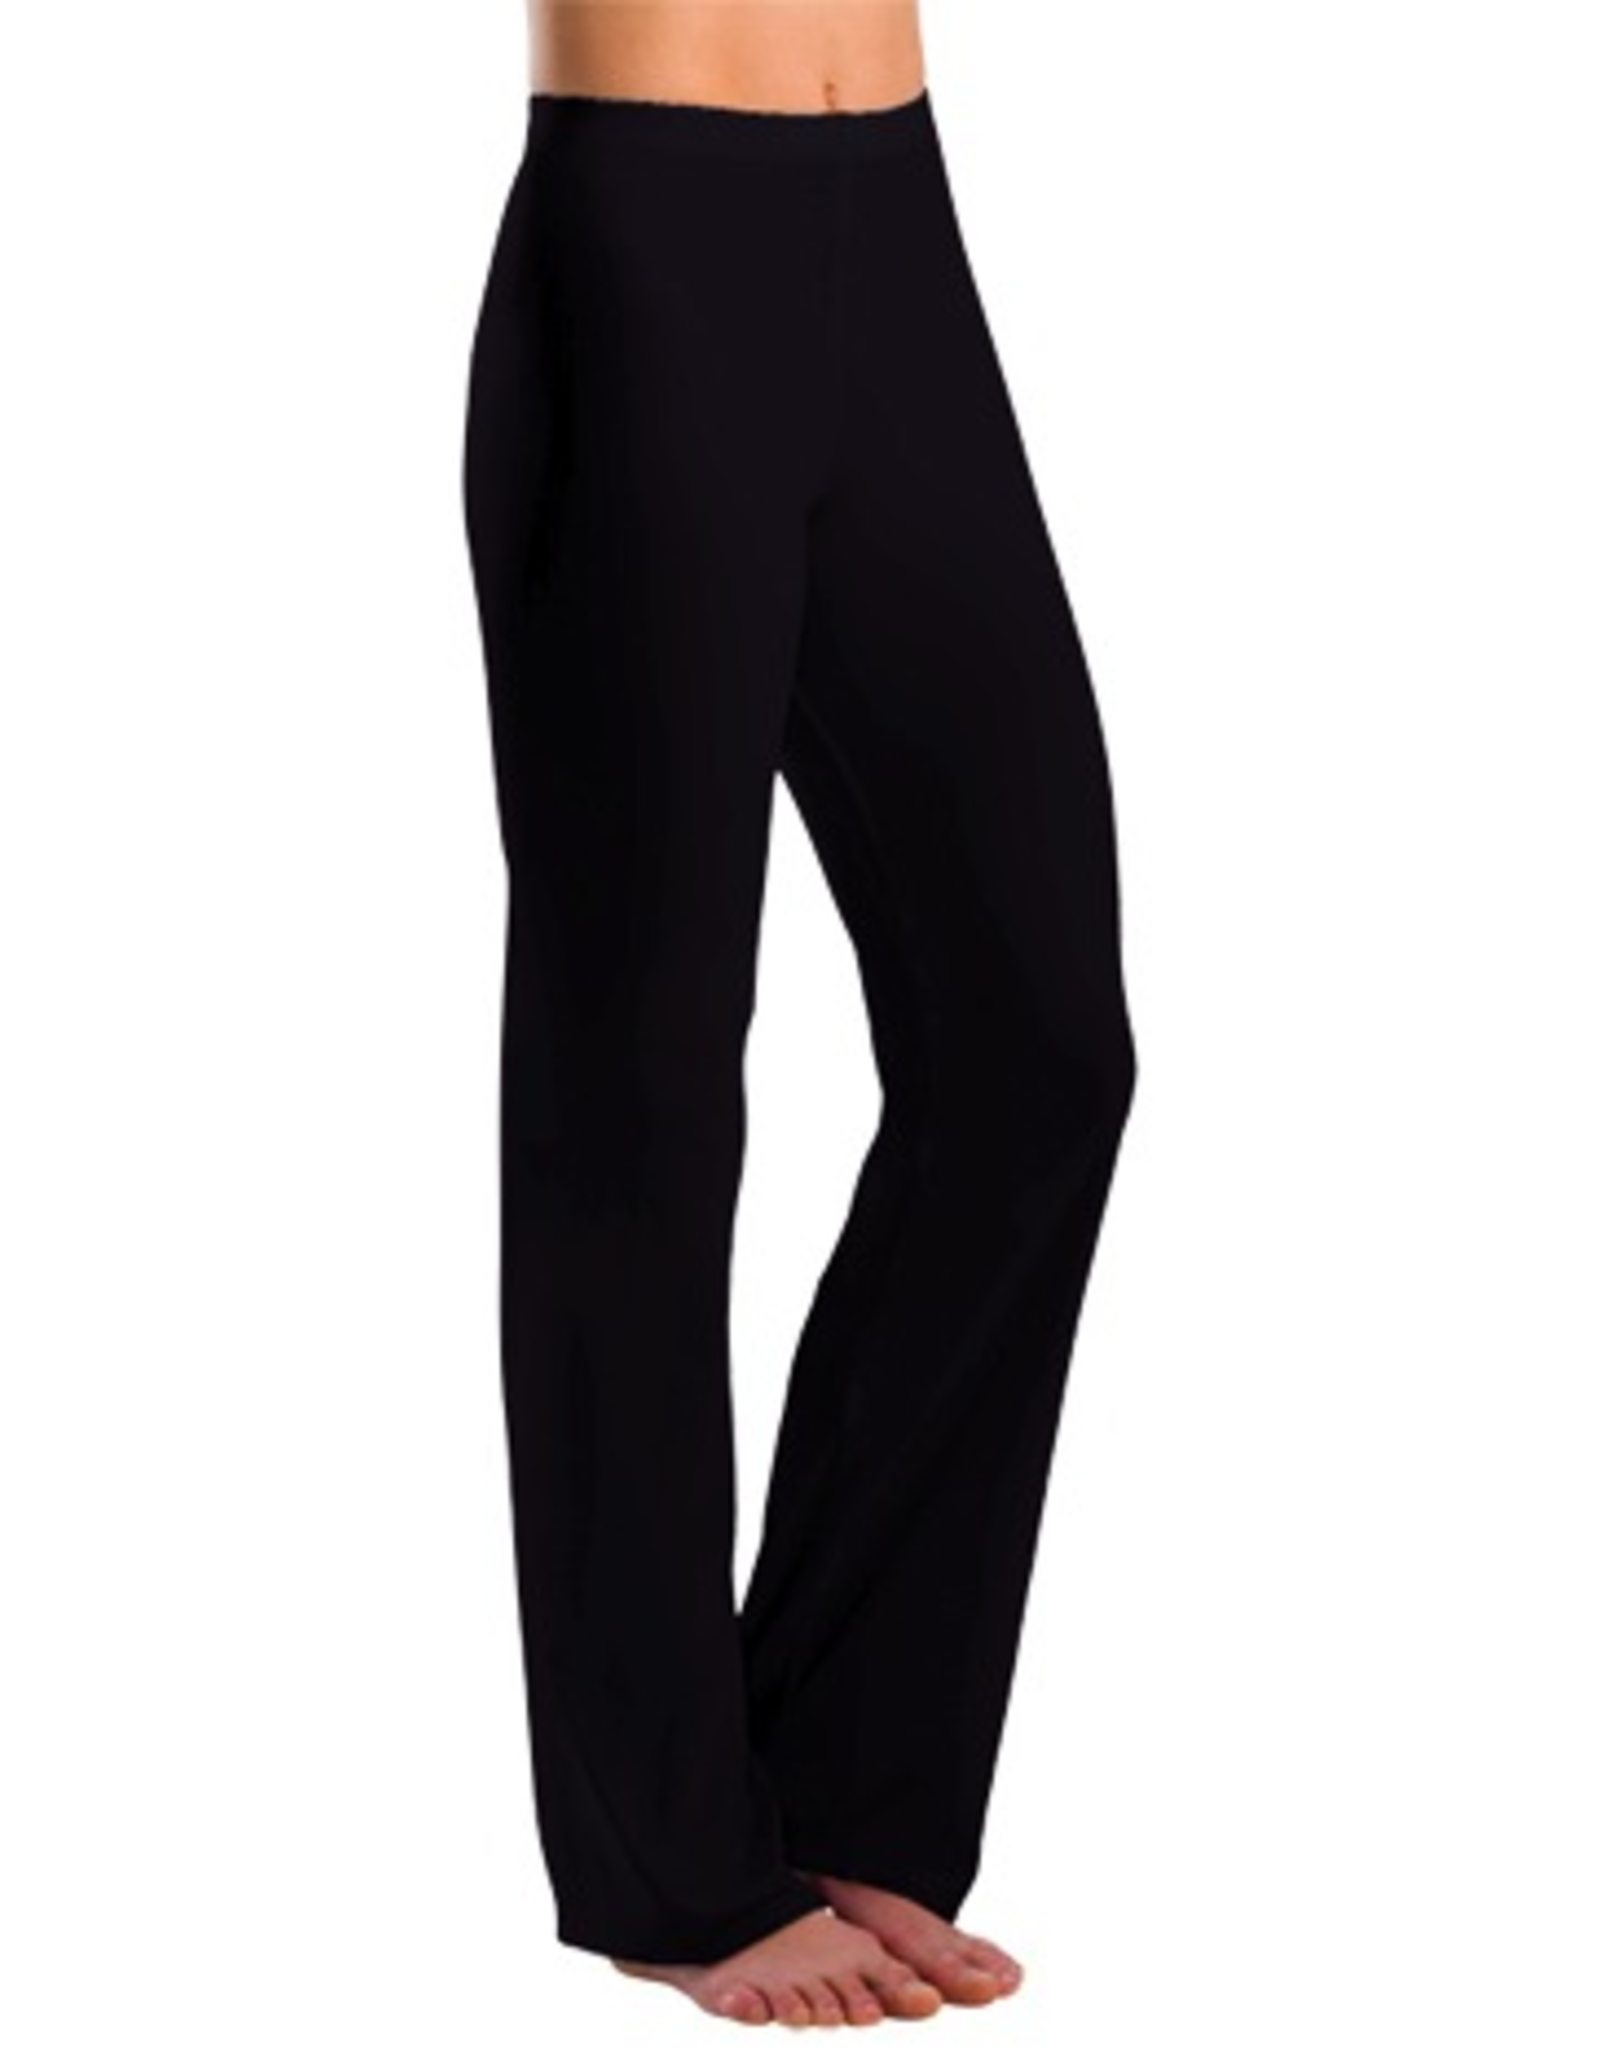 Motionwear 7152 Straight Waist Cotton Jazz Pants Adult